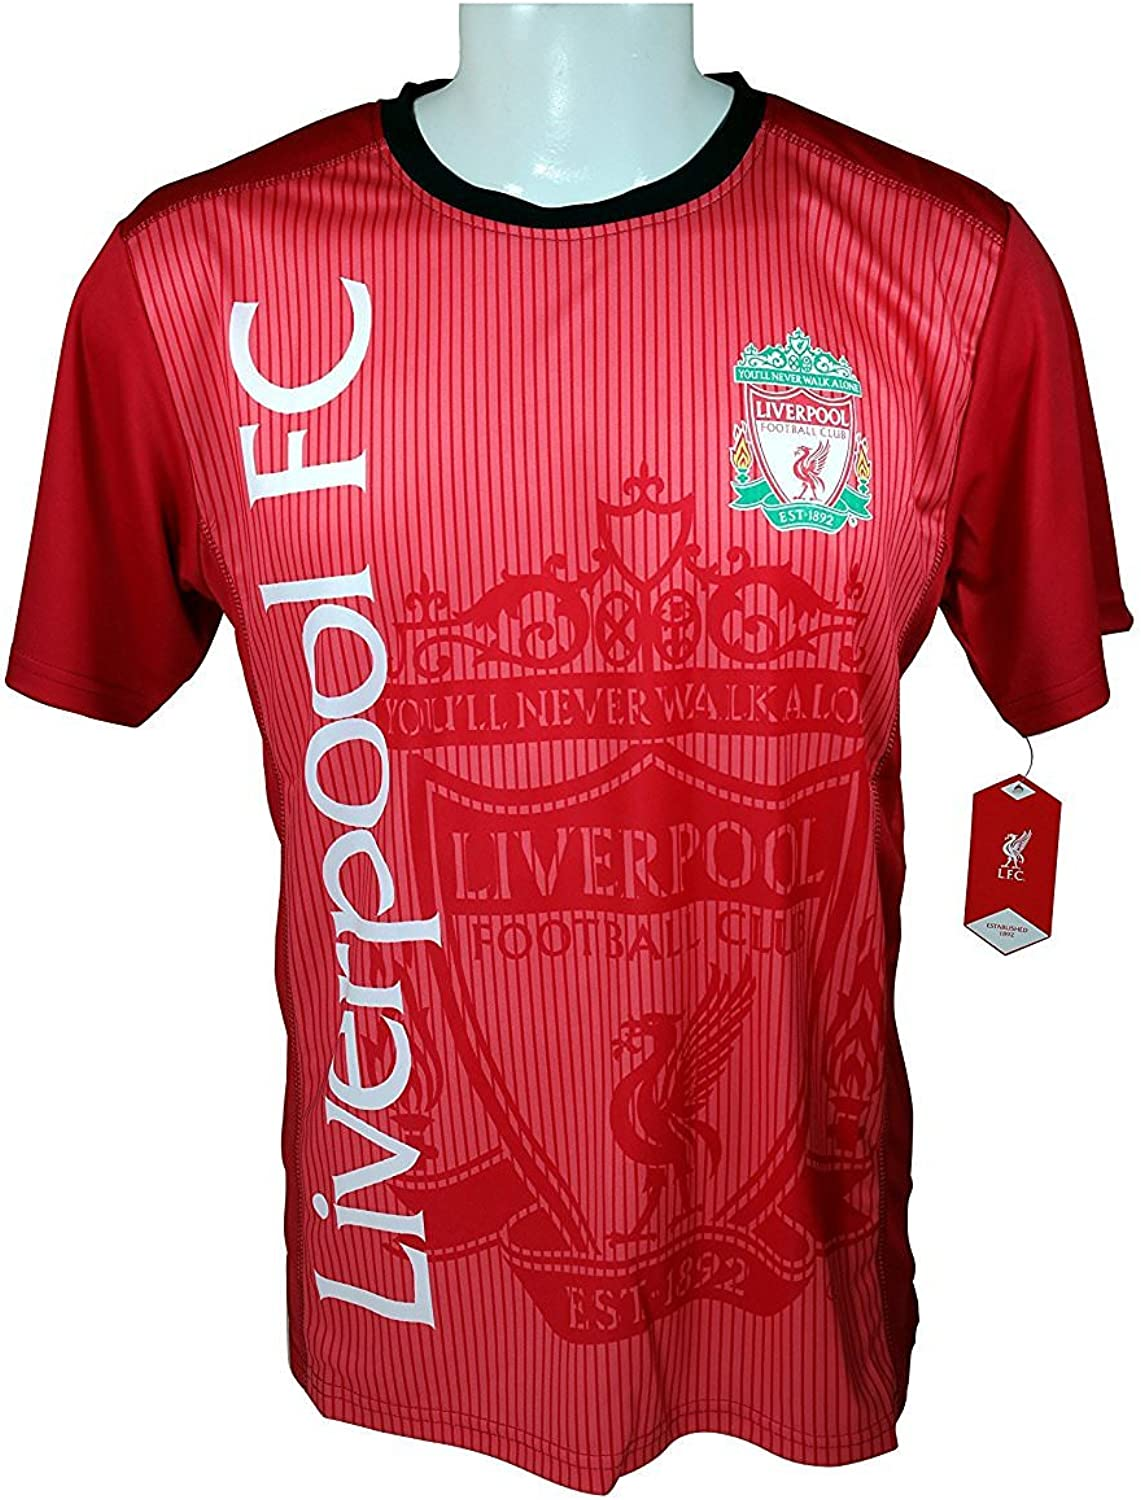 Liverpool F.C. Soccer Official Adult Soccer Training Performance Poly Jersey J018